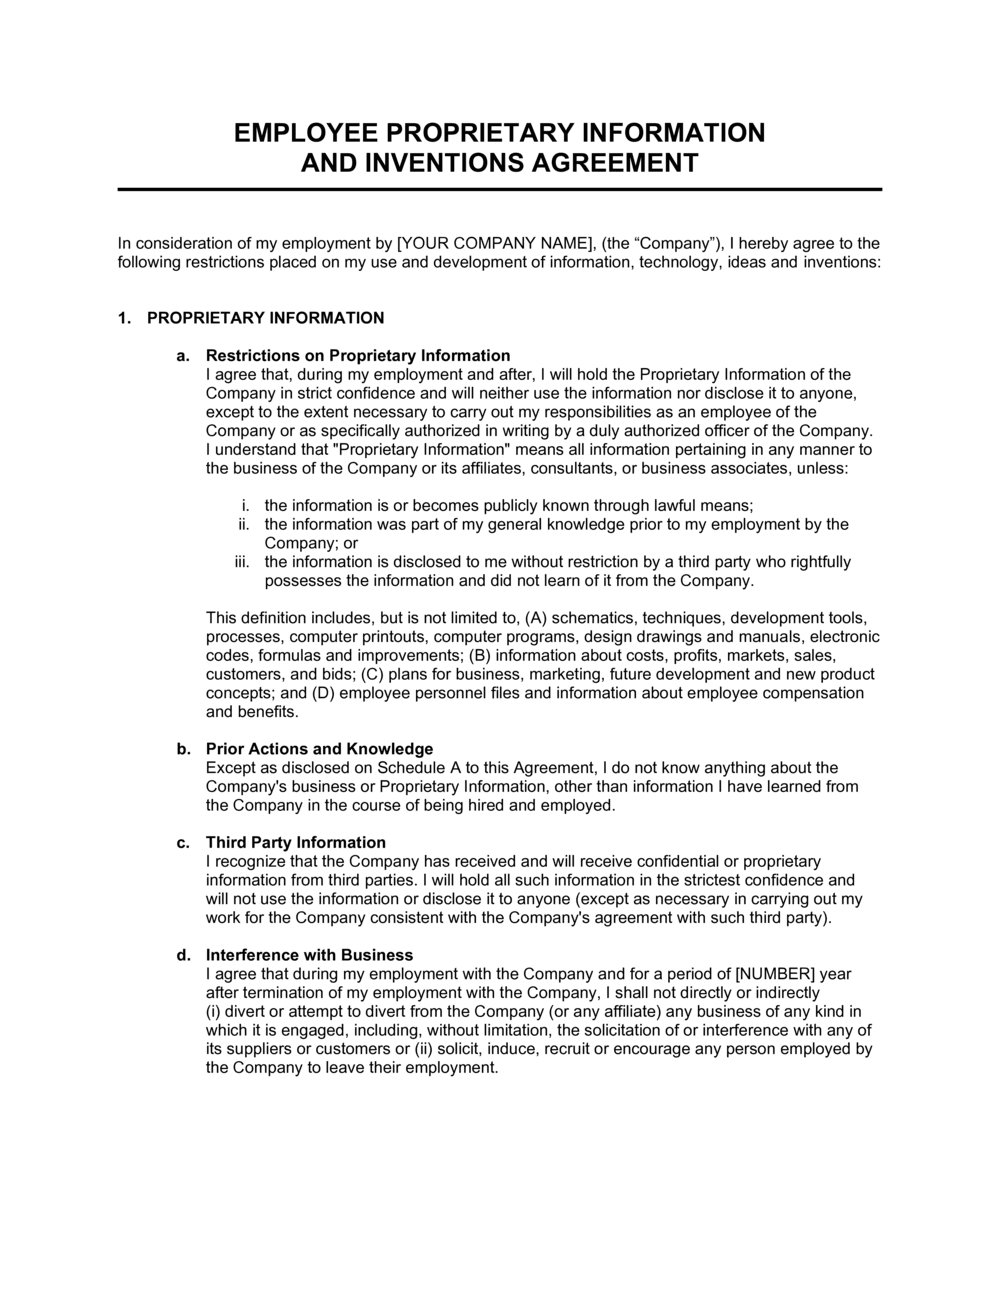 Business-in-a-Box's Proprietary Information and Inventions Agreement Template